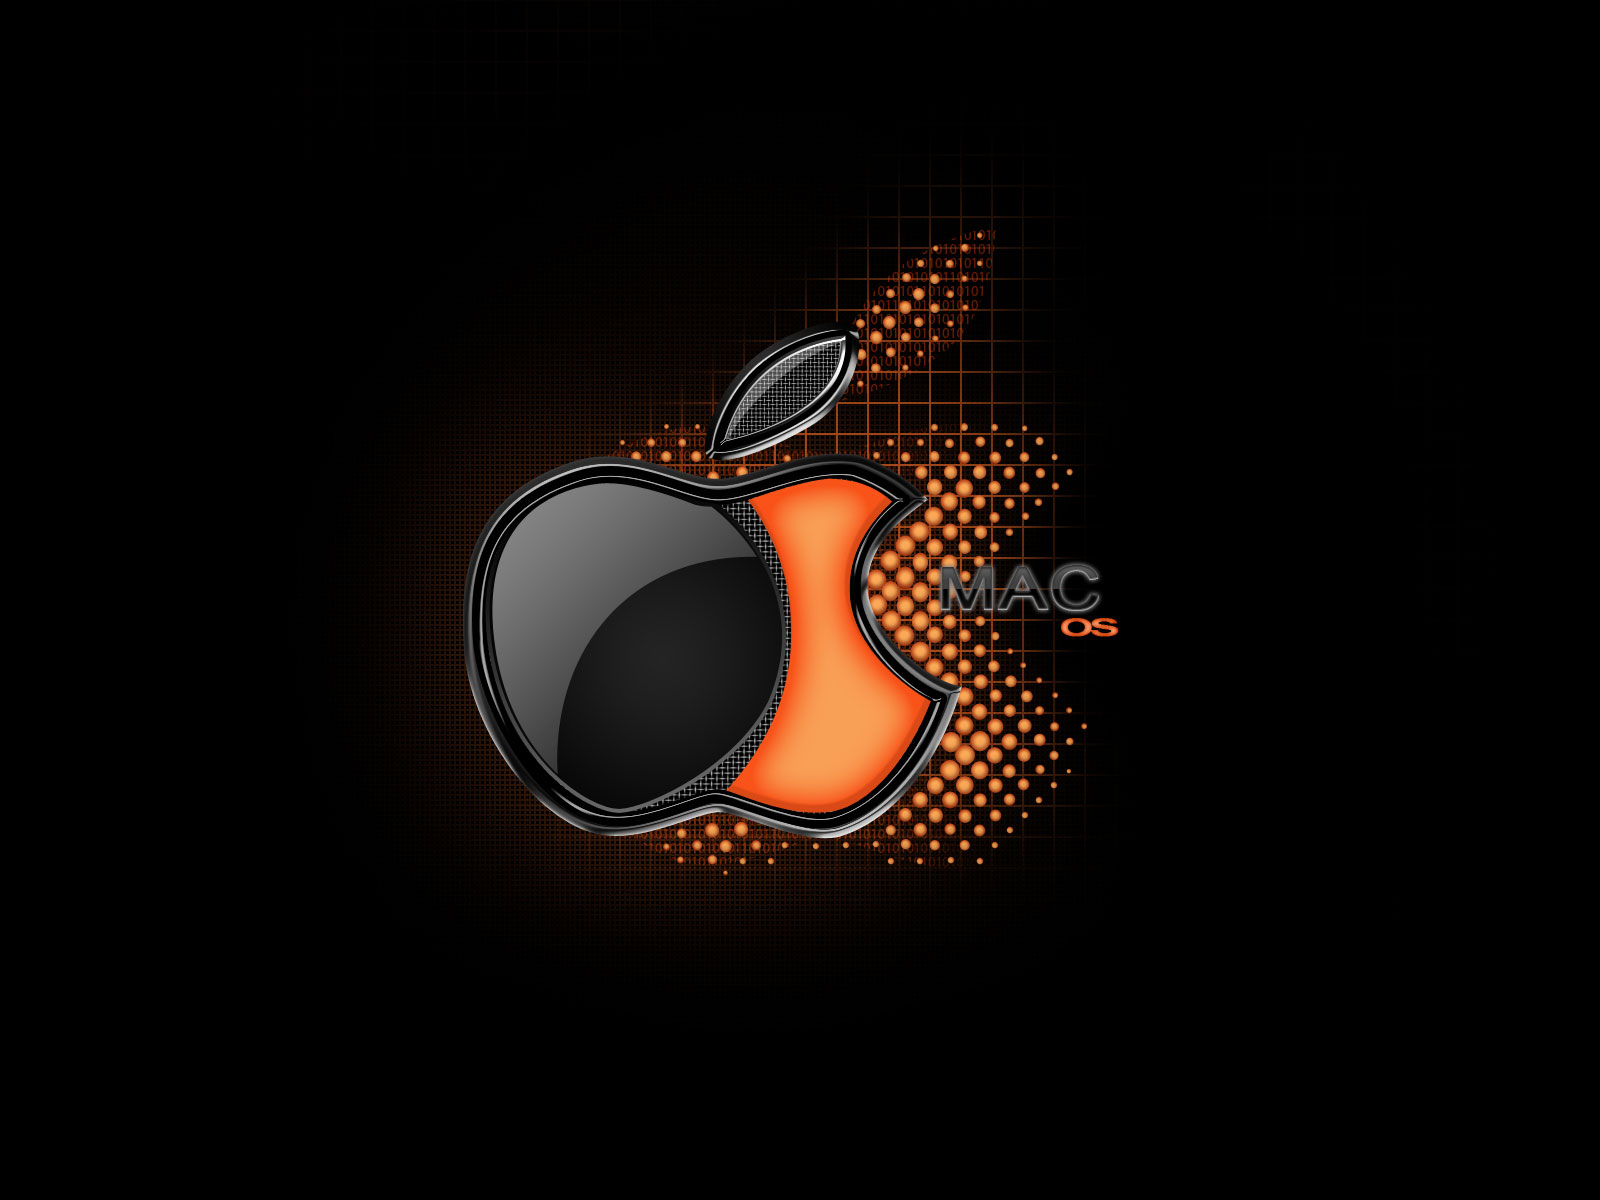 Apple Mac Os Image Hd